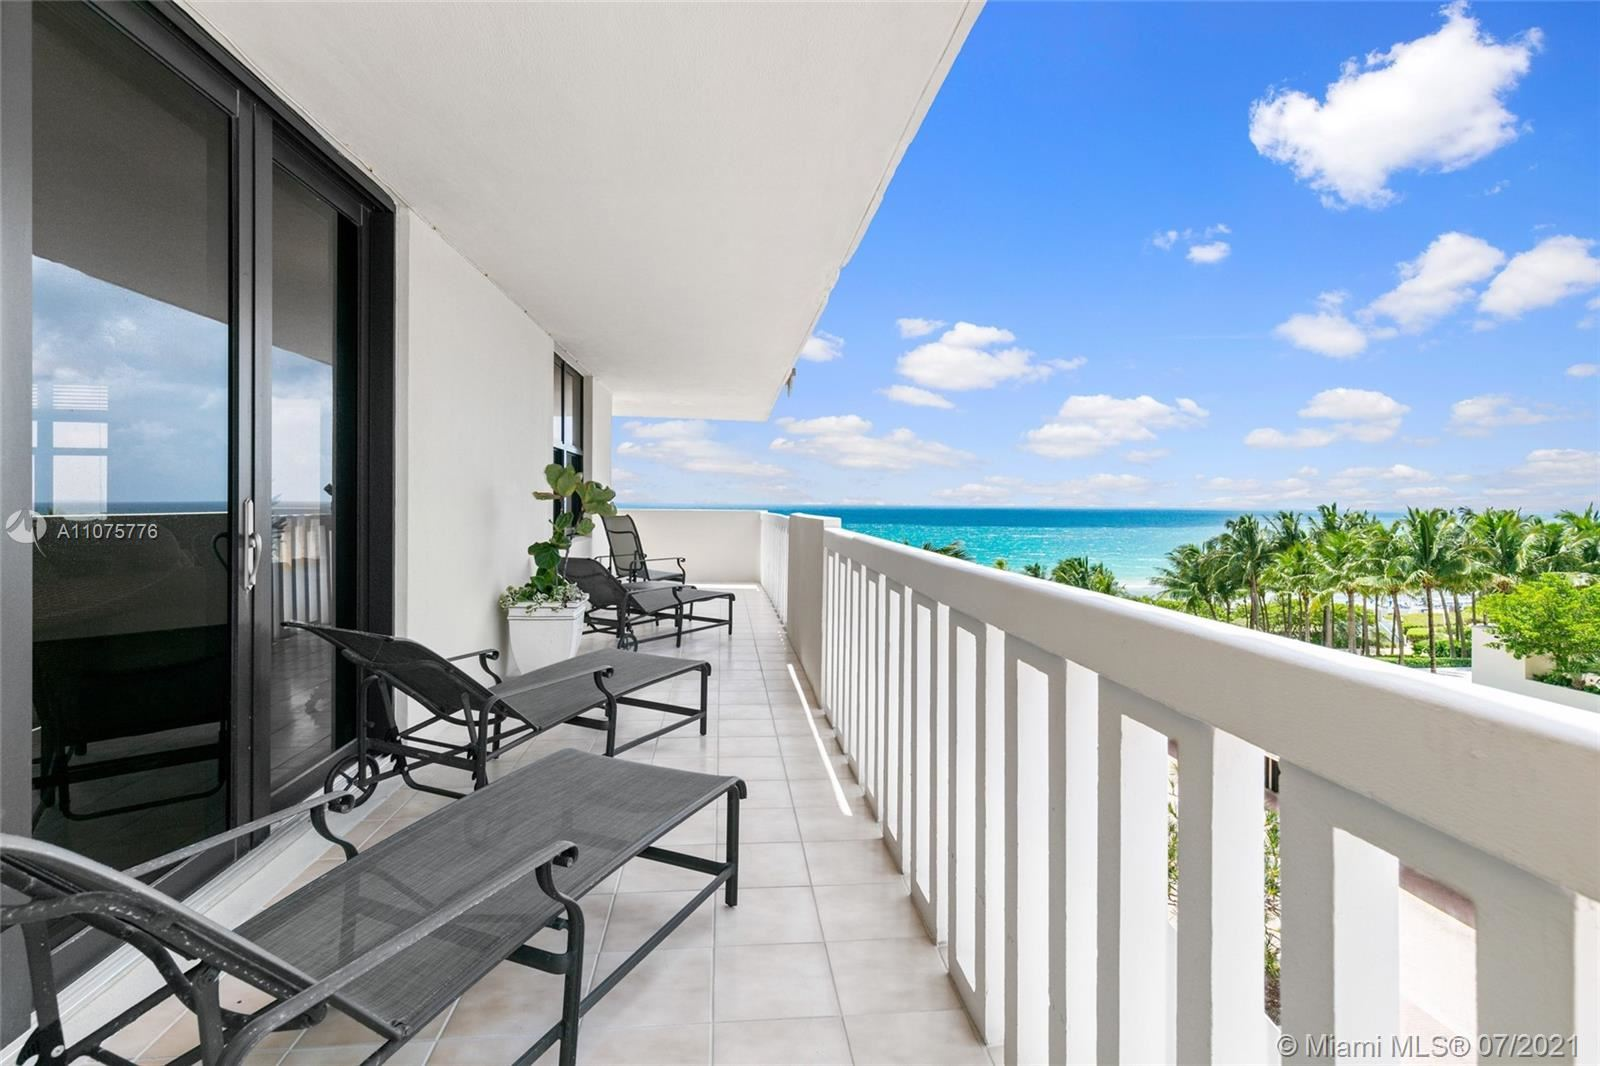 Photo of 9801 Collins Ave #8Z, Bal Harbour, FL 33154 (MLS # A11075776)